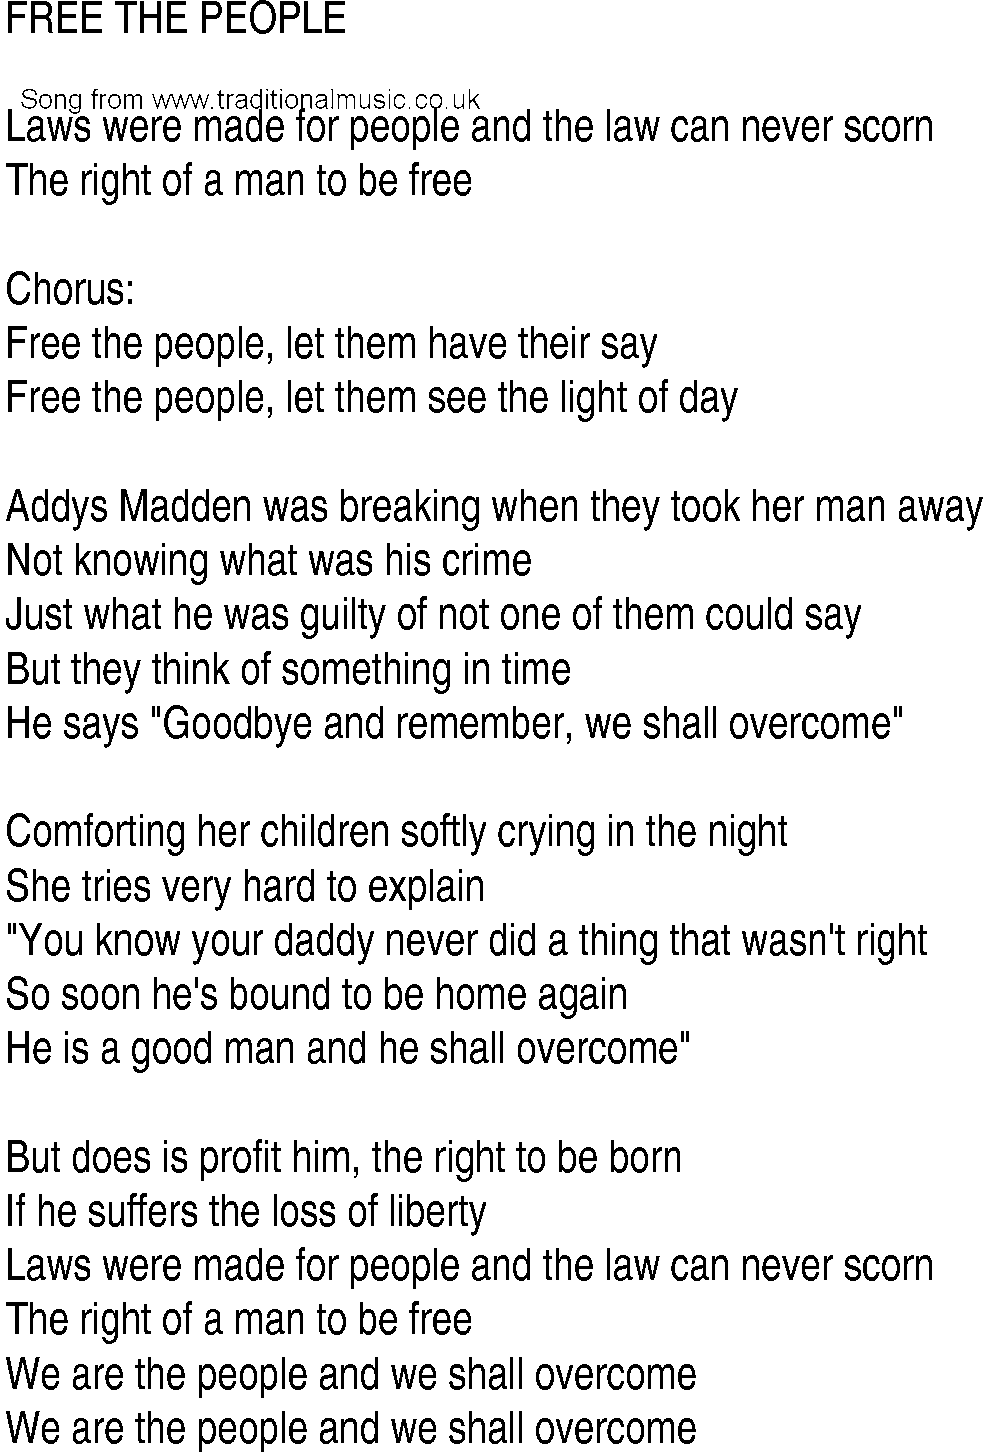 irish music  song and ballad lyrics for  free the people